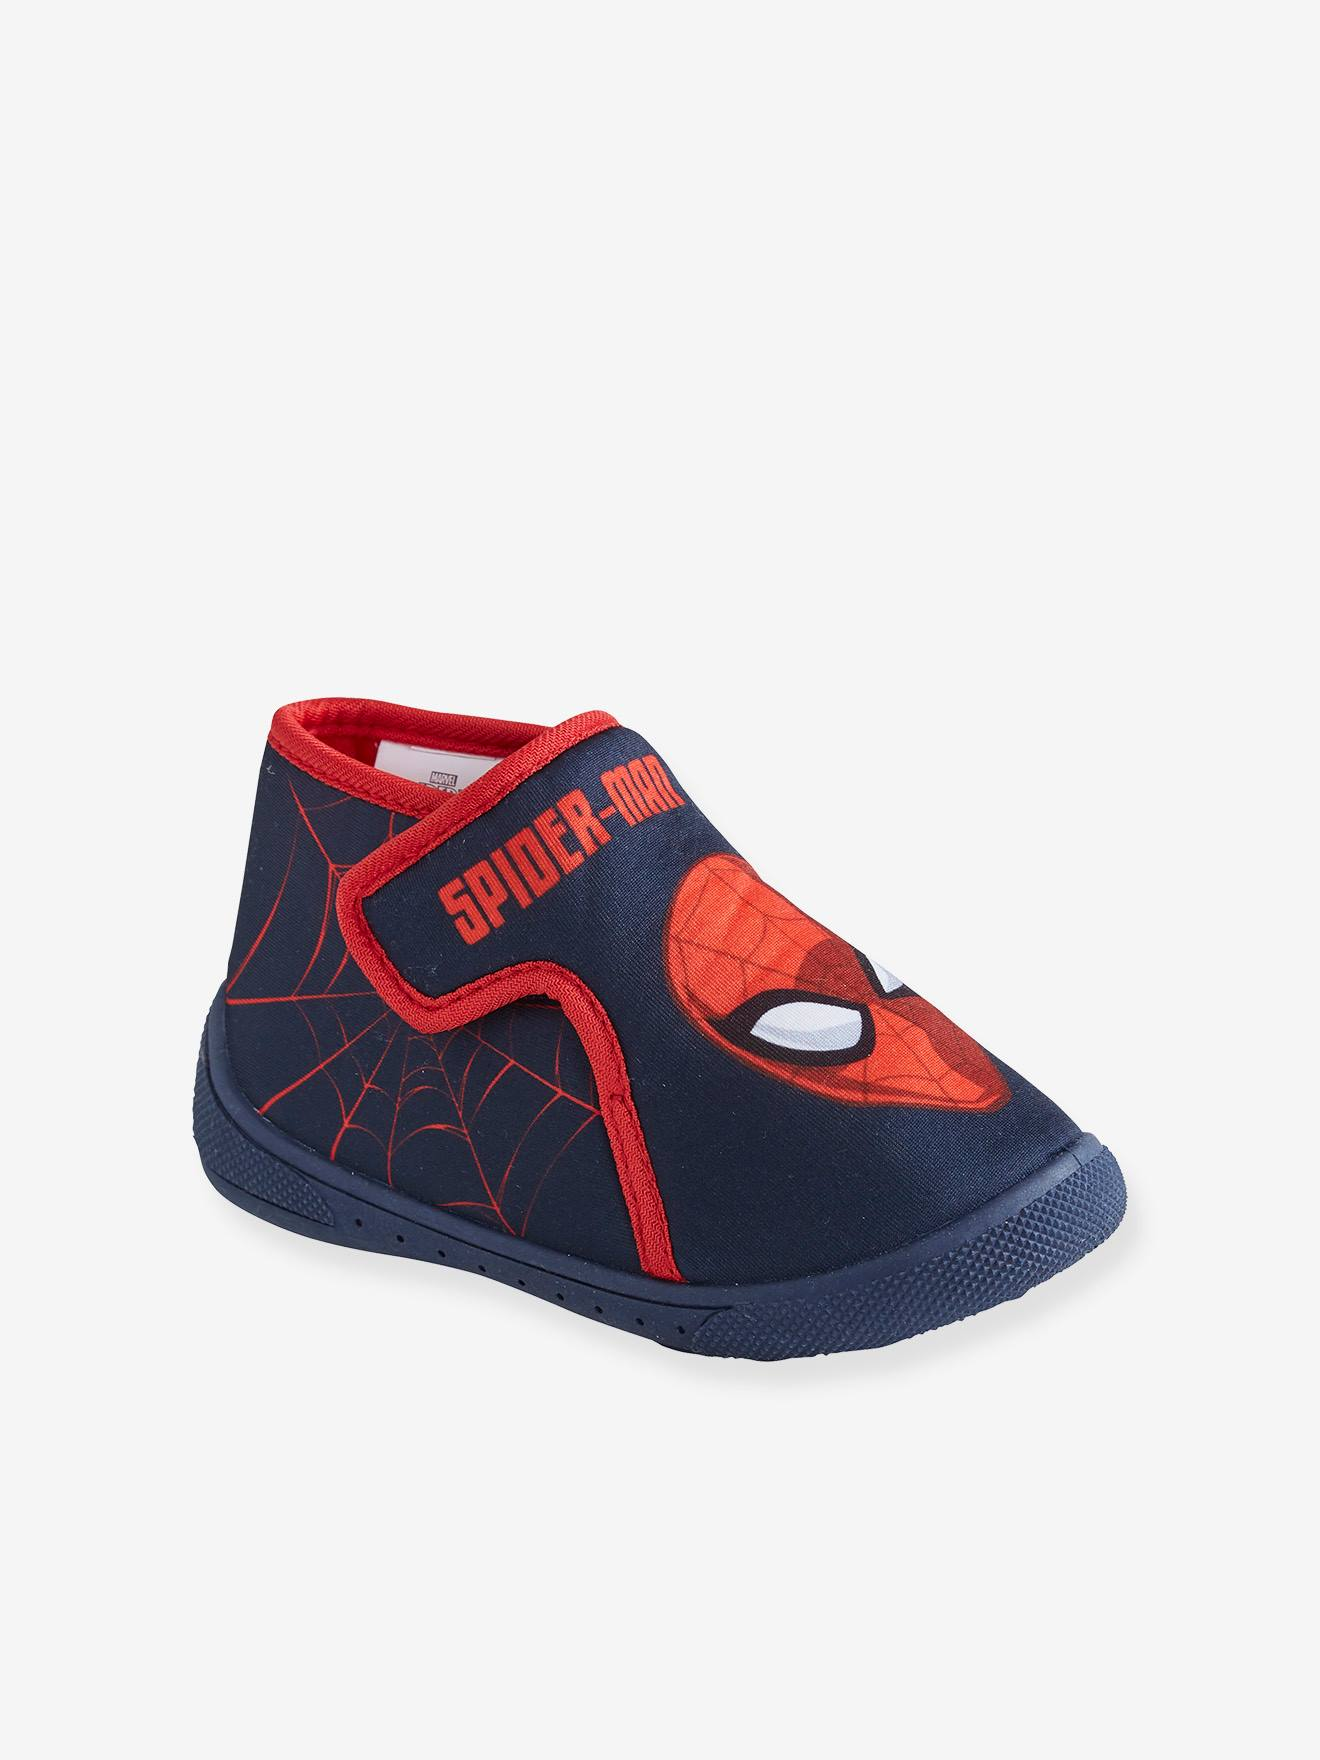 Slippers with Touch Fasteners for Boys, Spiderman® by Marvel - blue medium  solid with design, Shoes | Vertbaudet